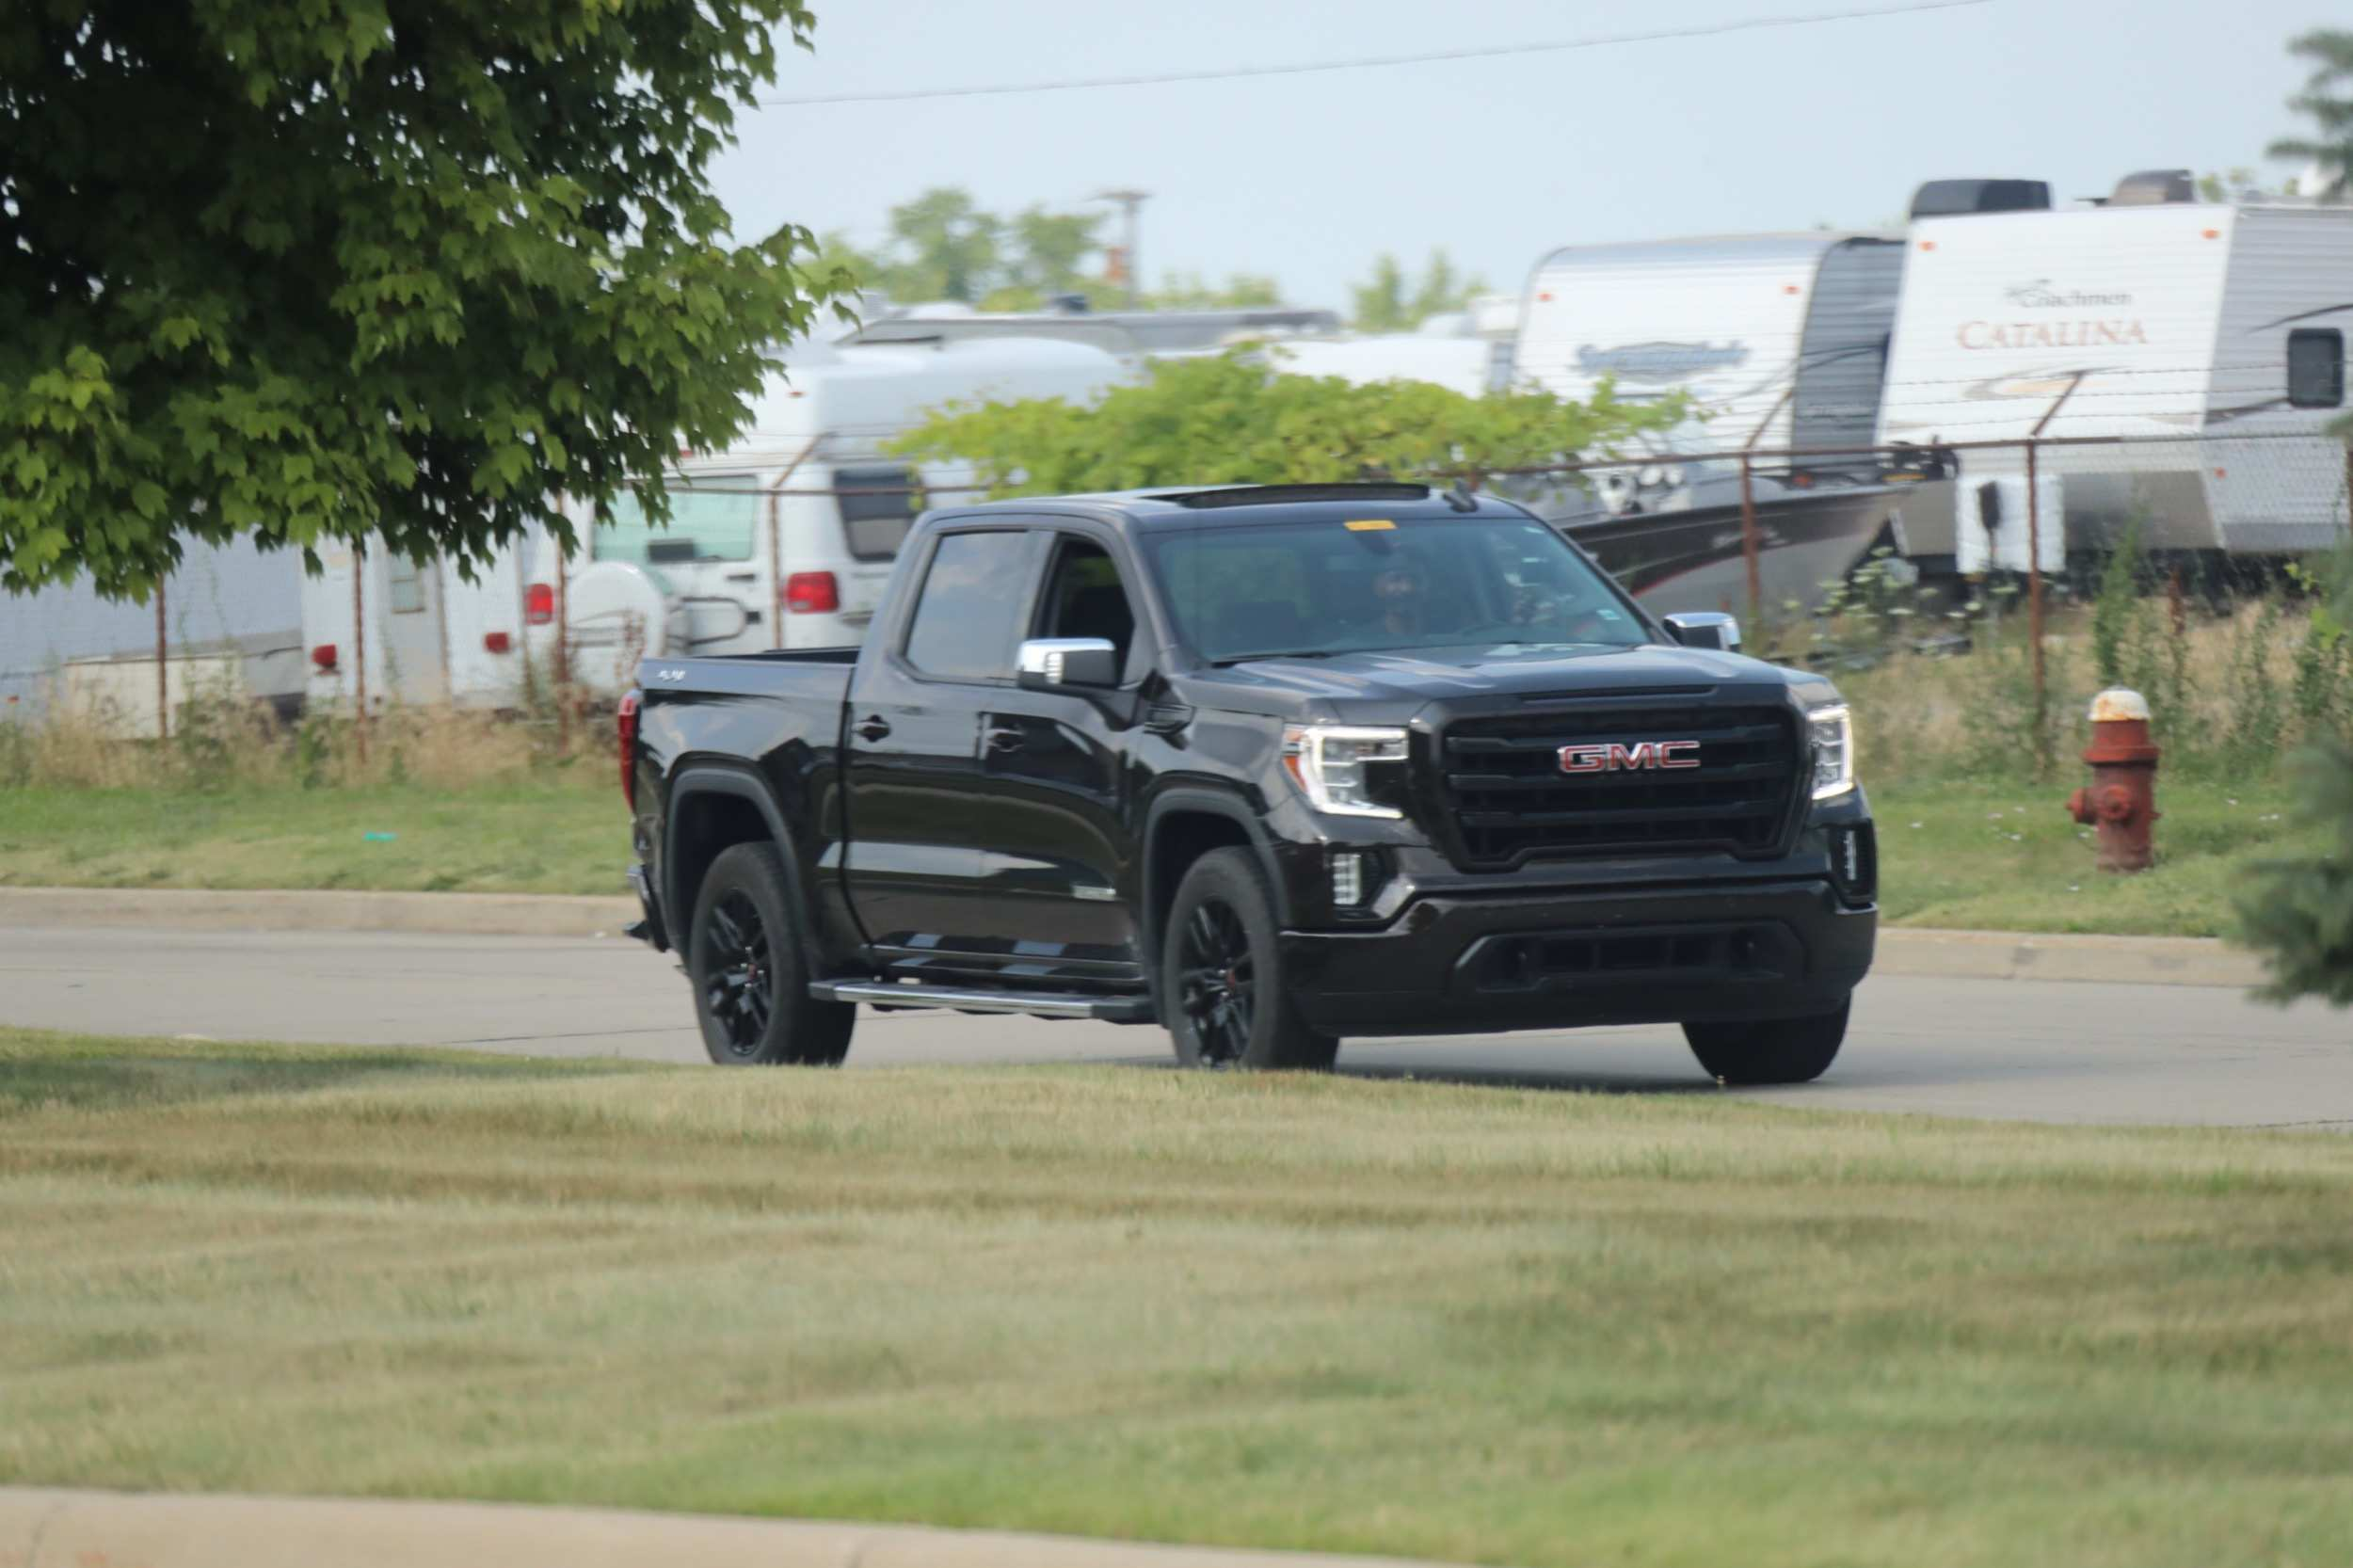 91 Great The Gmc 2019 Video Review And Price Photos by The Gmc 2019 Video Review And Price